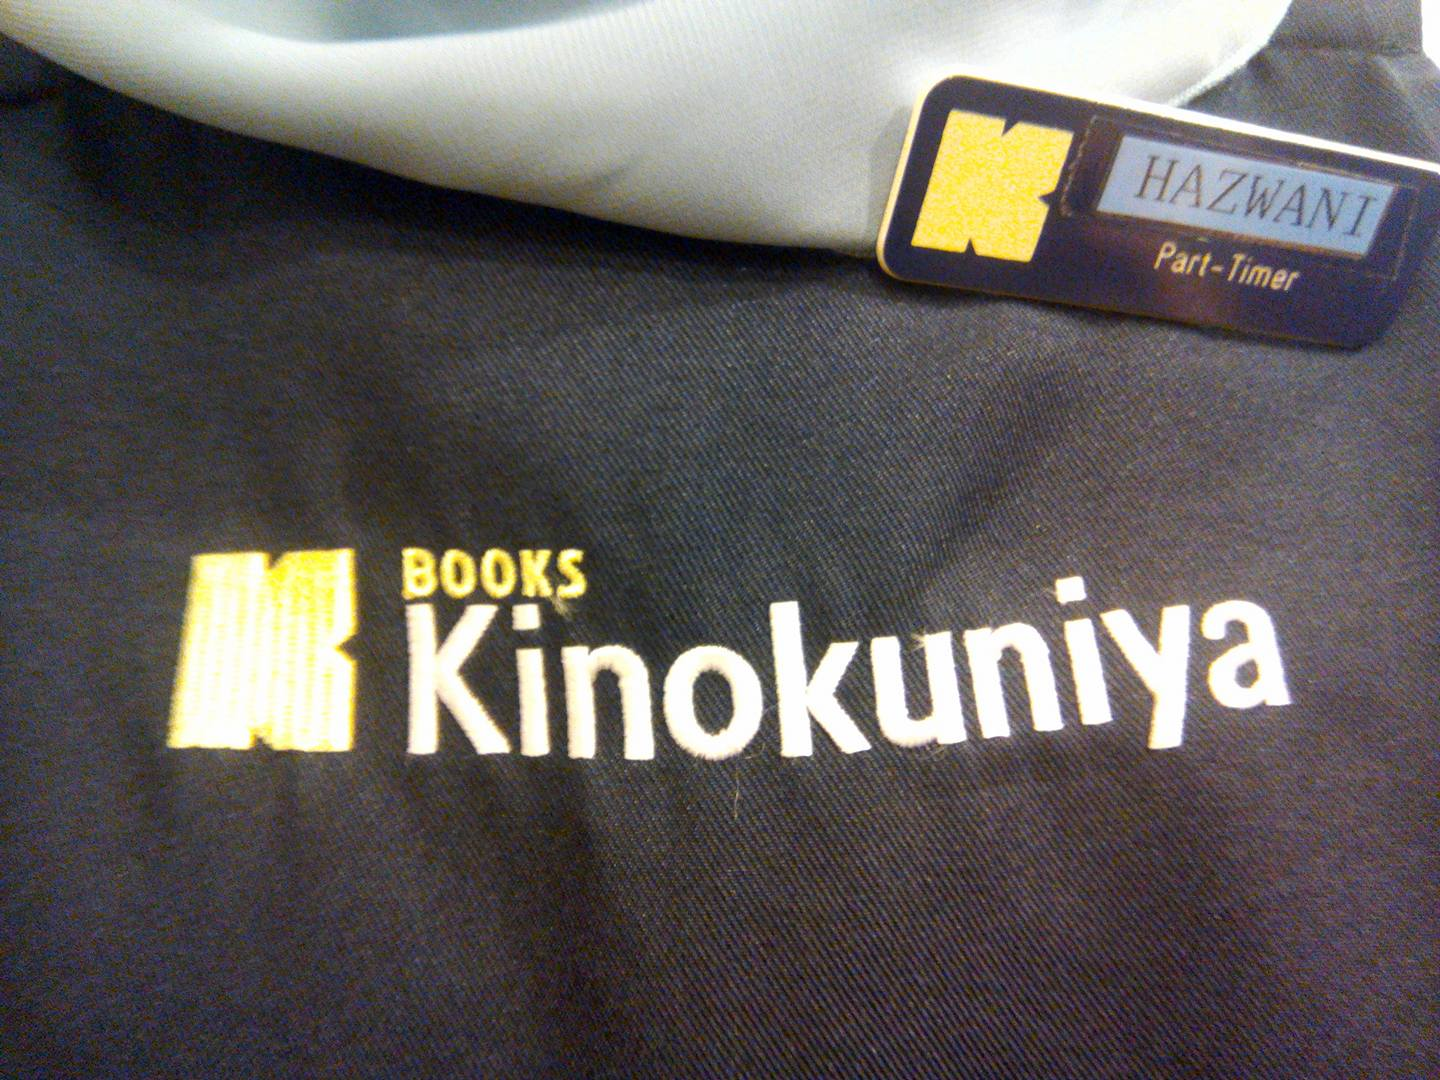 "The kind bookstore attendant told me Kinokunia is a Japanese term meaning ""Bookstore of Kii Province"". The company has its headquarters in Meguro, Tokyo."